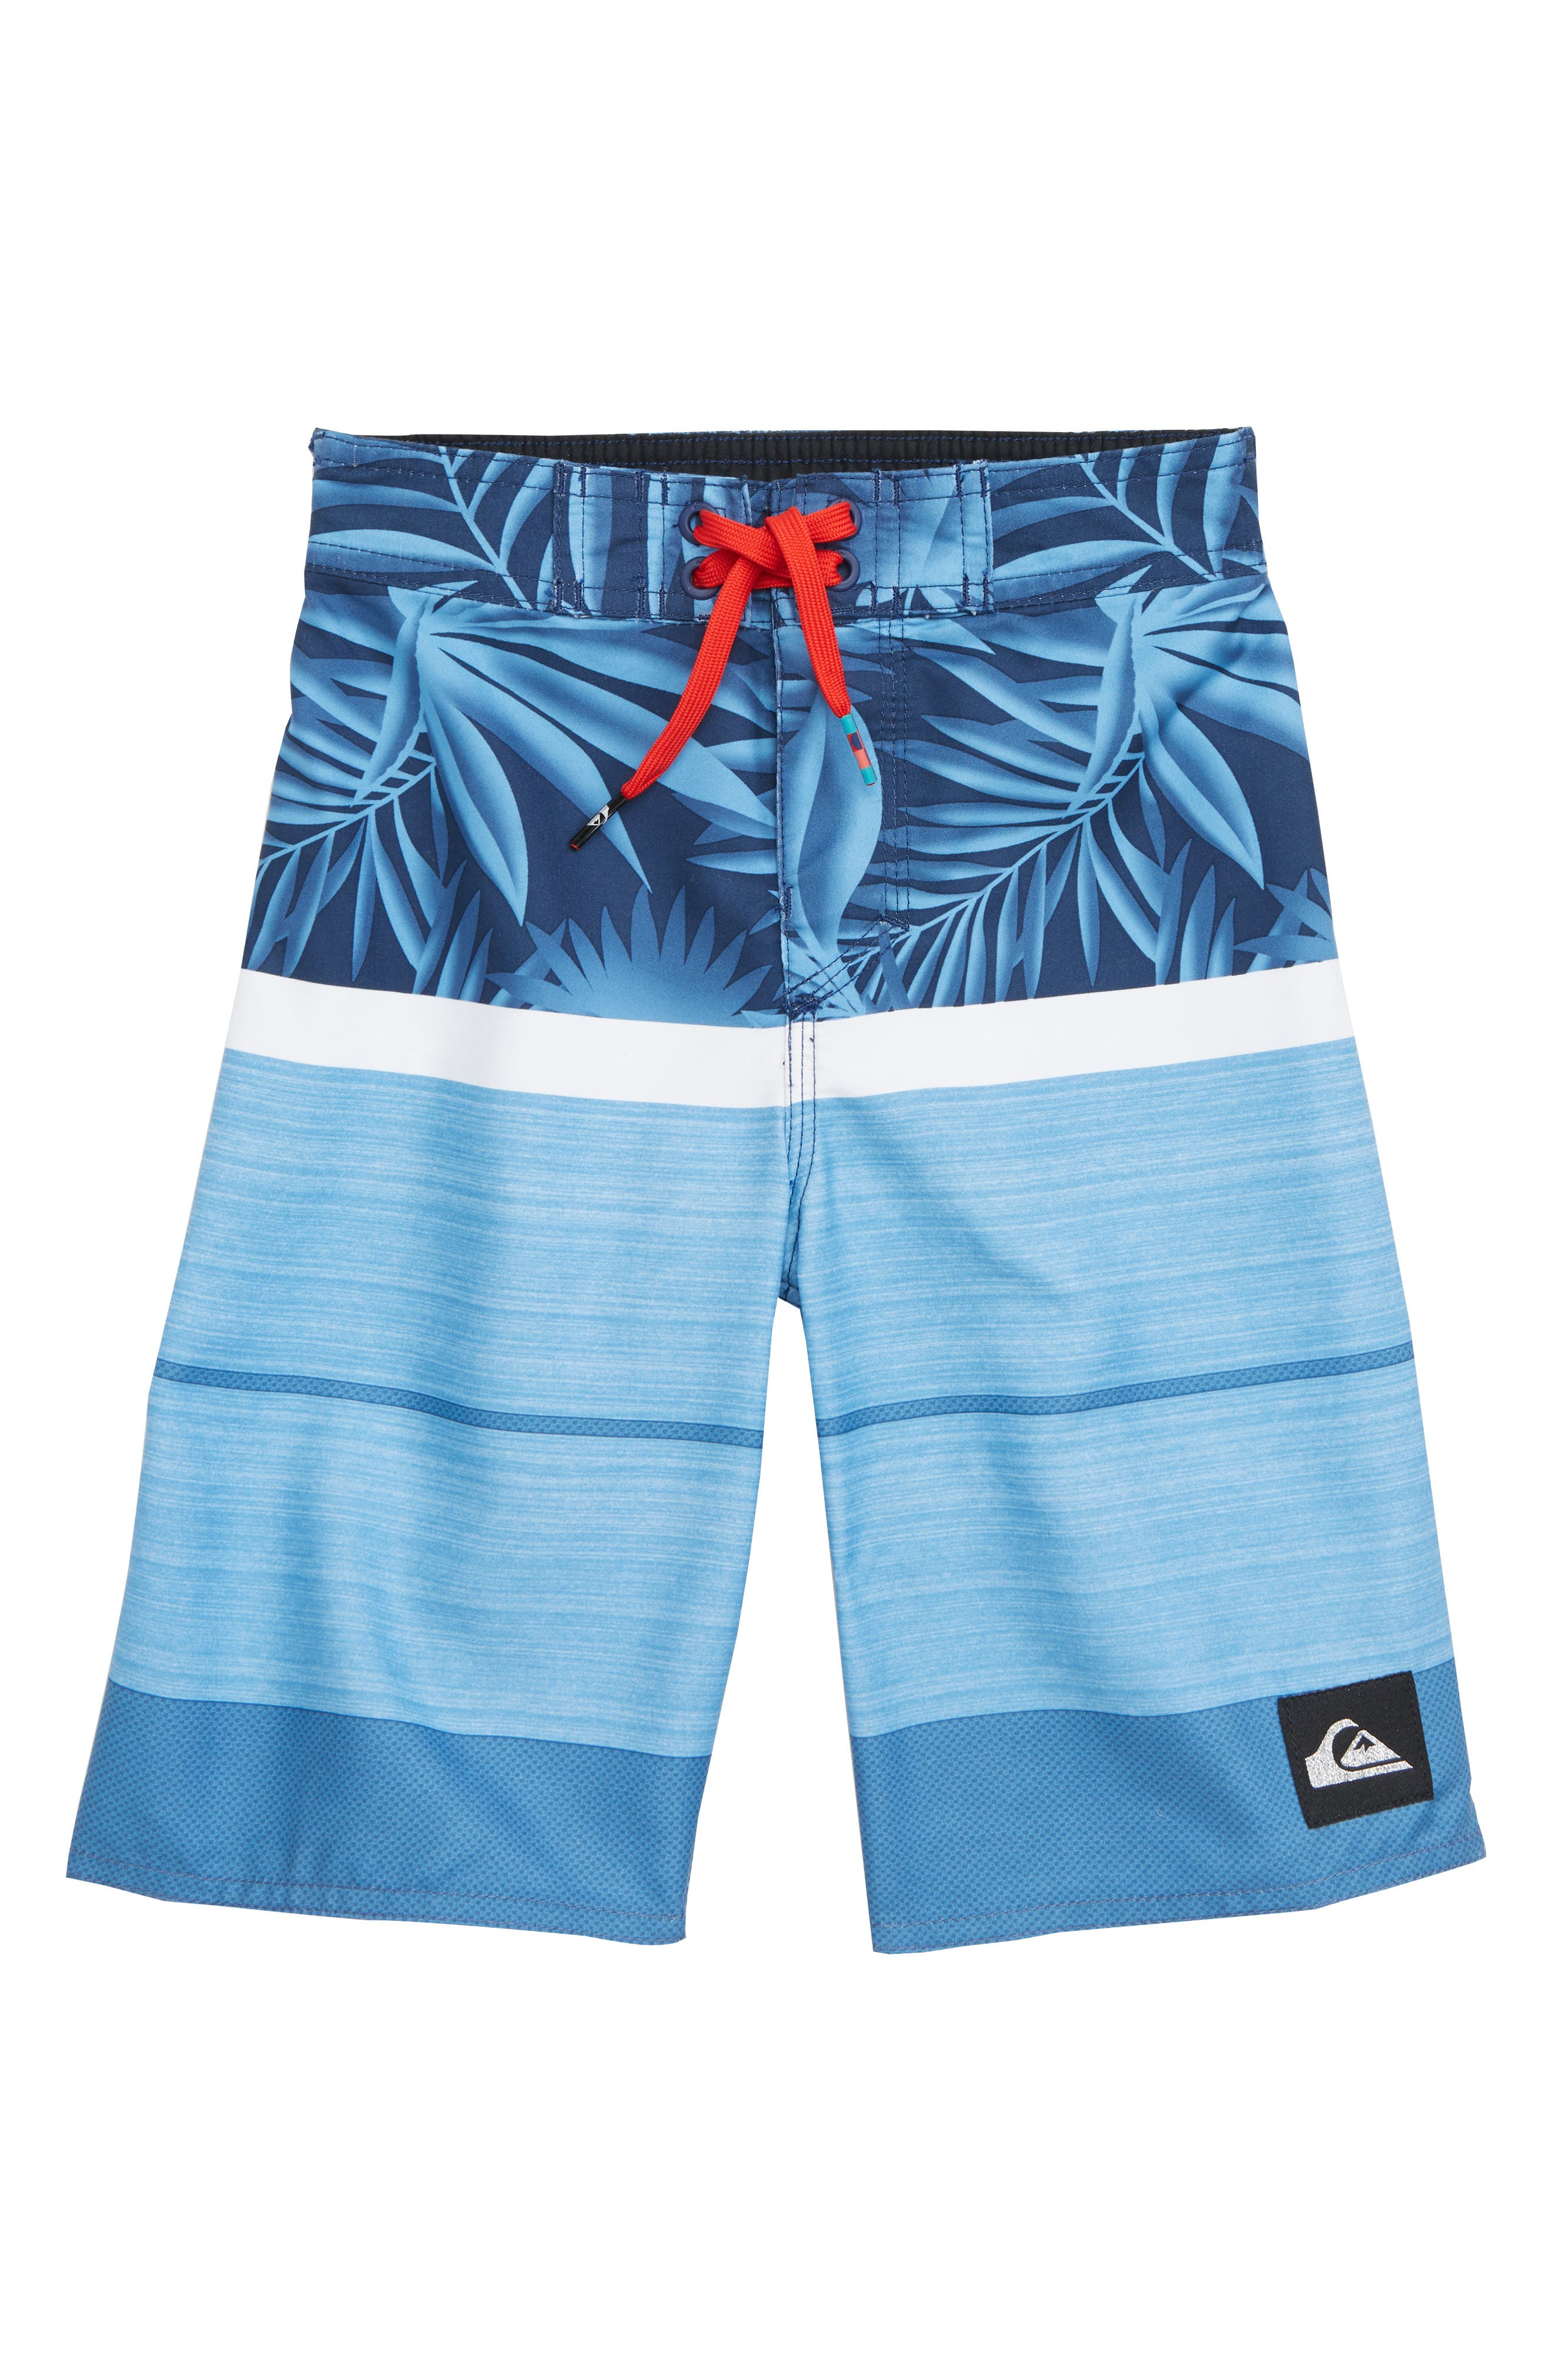 Slab Island Board Shorts,                             Main thumbnail 1, color,                             MEDIEVEL BLUE